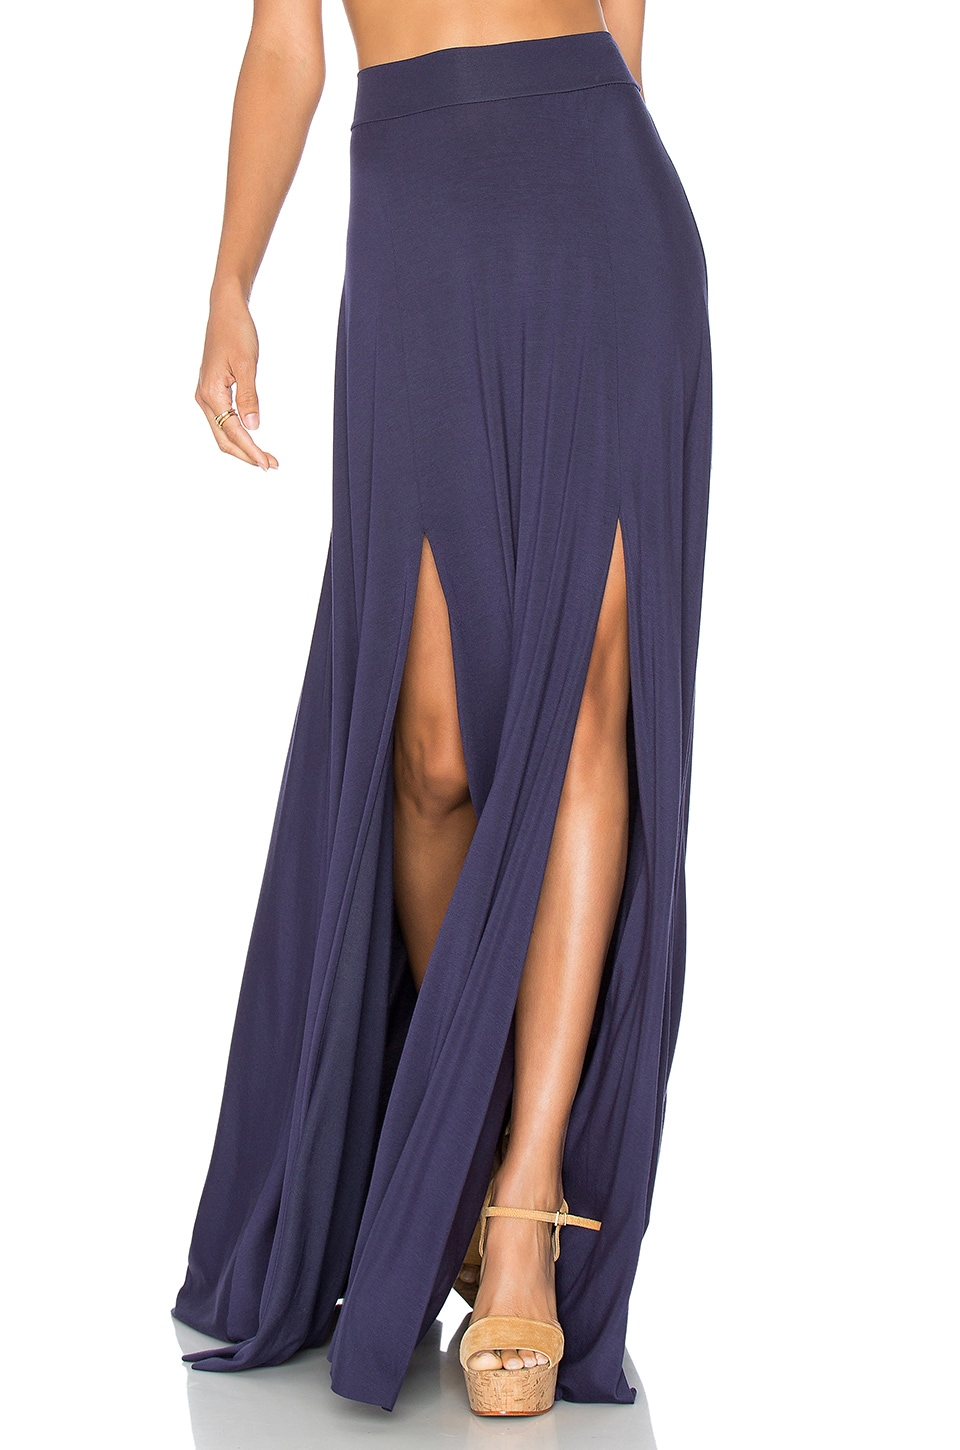 Rachel Pally Josefine Maxi Skirt in Nightfall